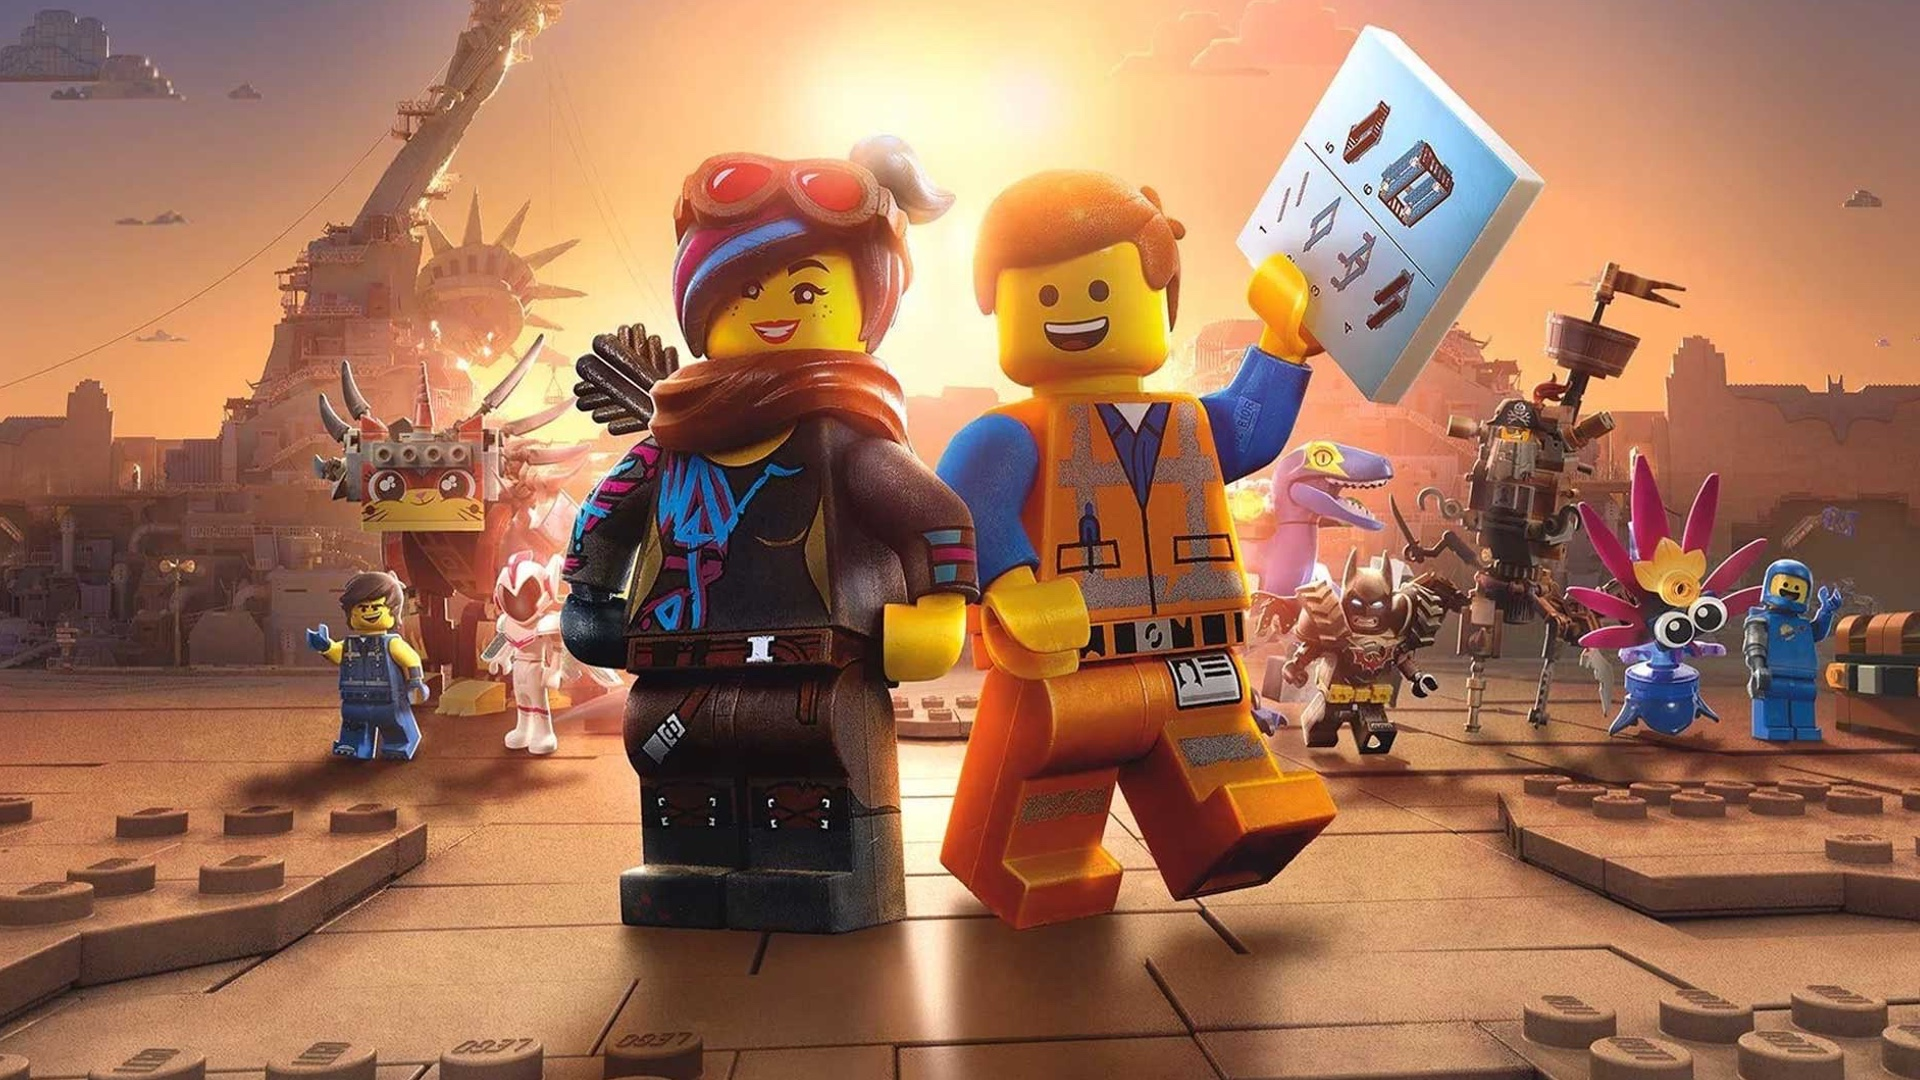 The Lego Movie 2 Wallpaper & Lego 2 Theme HD